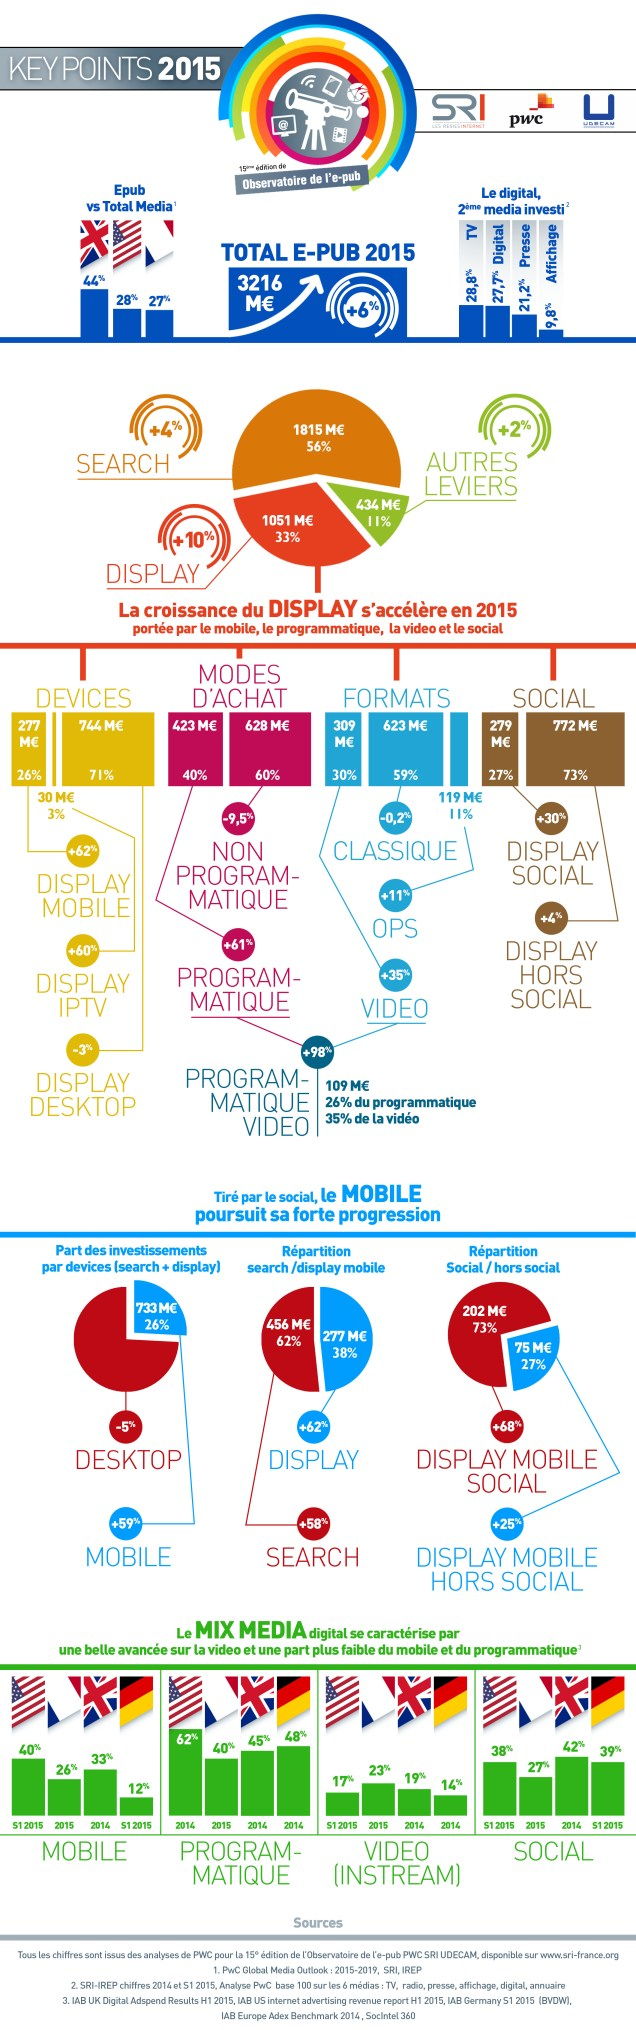 French AdMarket Report for 2015 - Programmatic